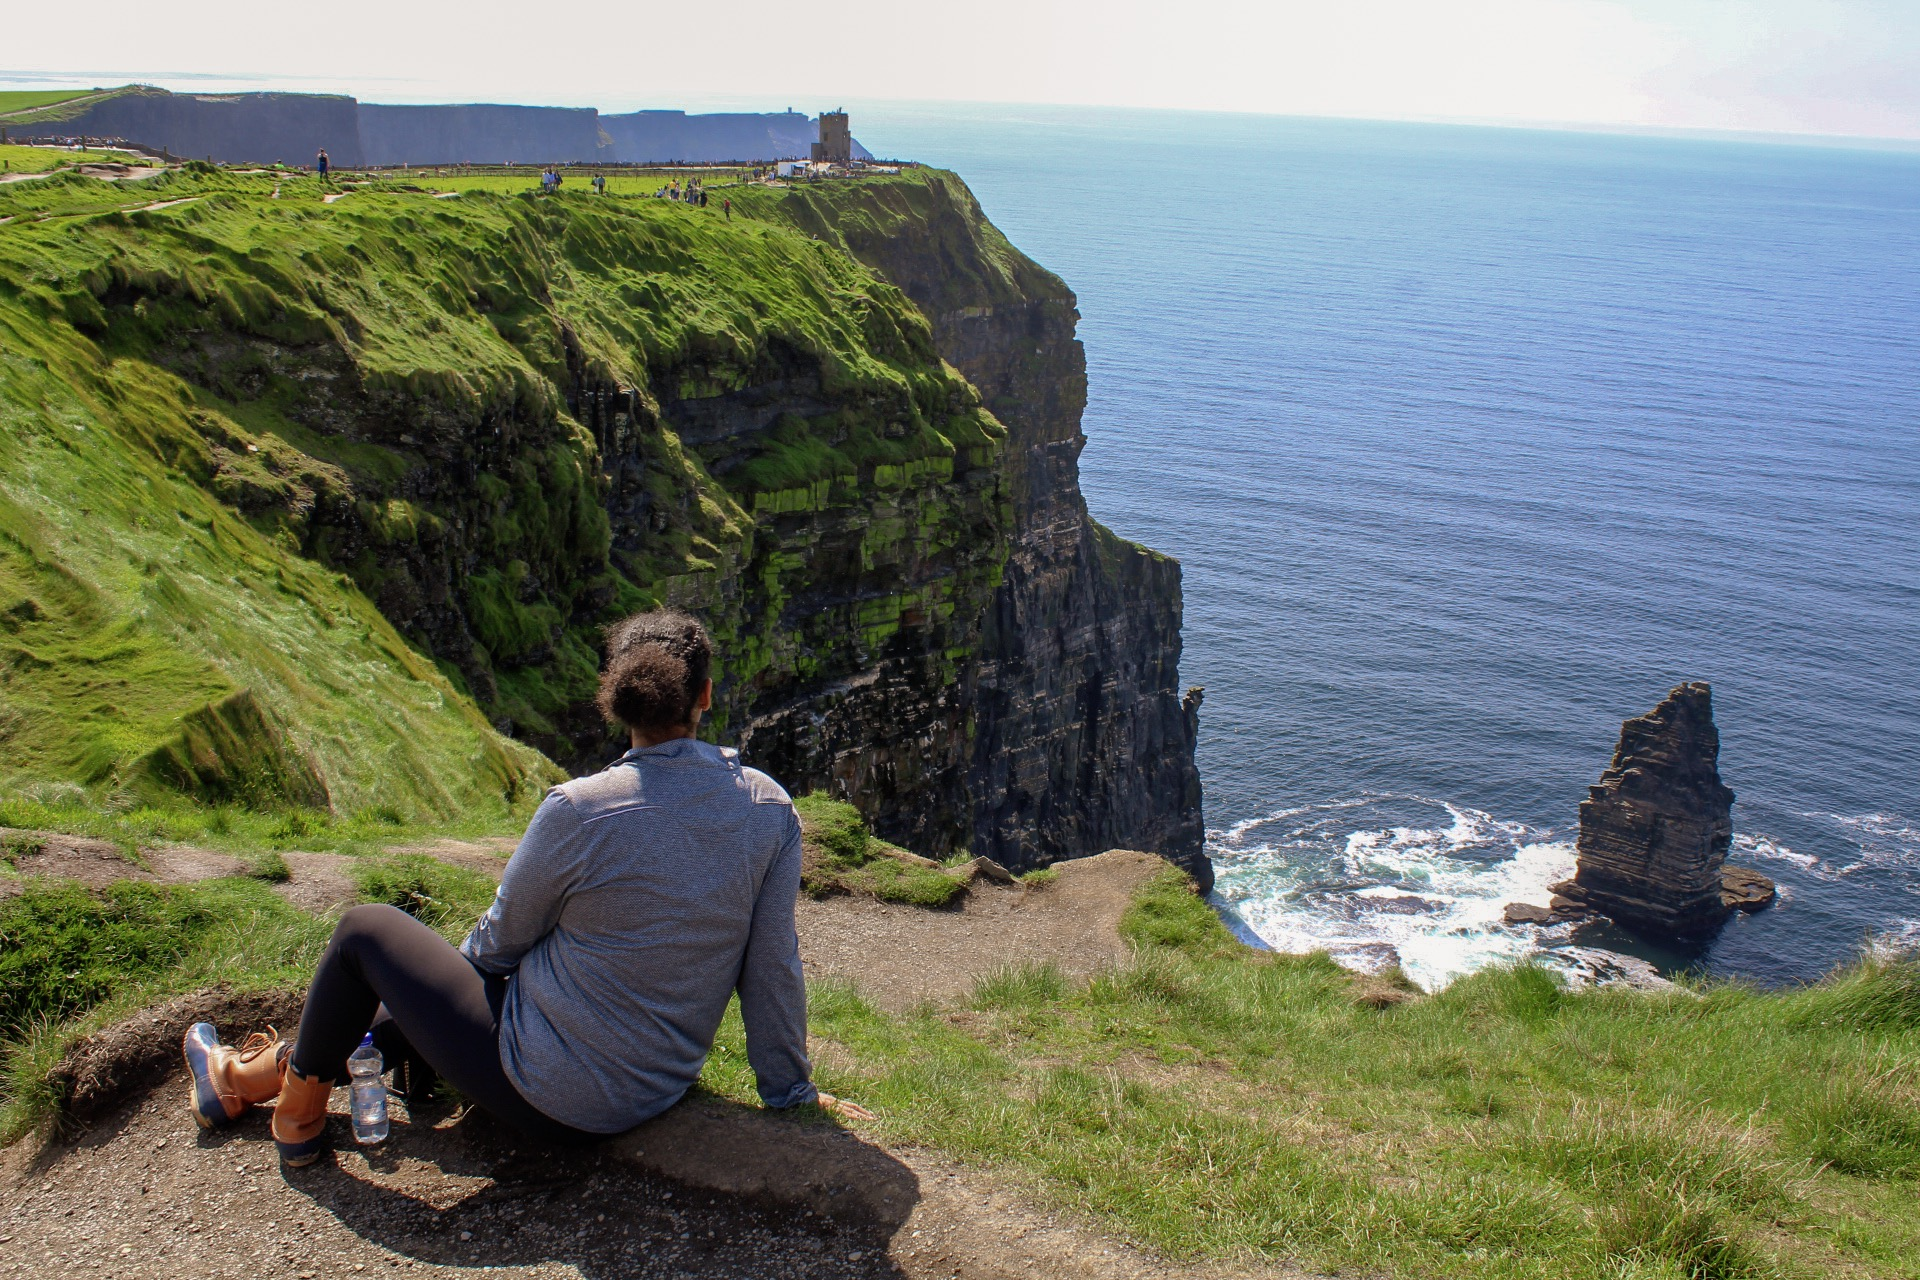 Sitting along the Cliffs of Moher